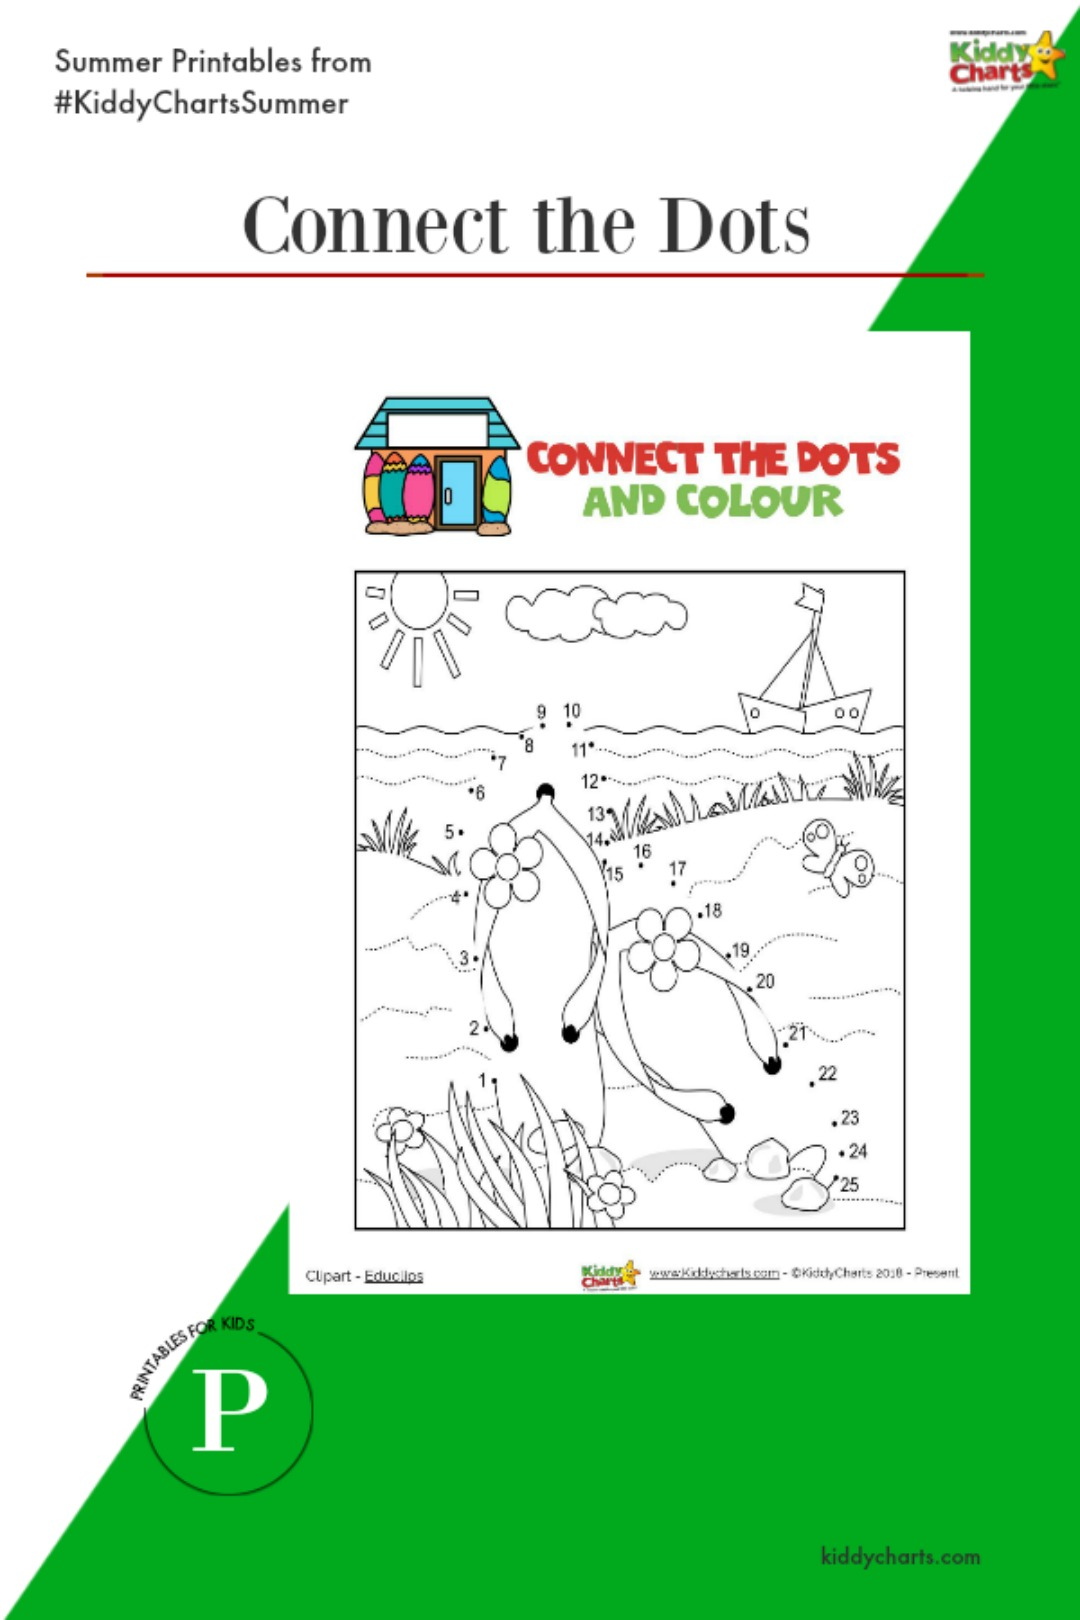 Summer activities for the kids - free printables, a connect the dots this time, and more on the site #summer #printables #kids